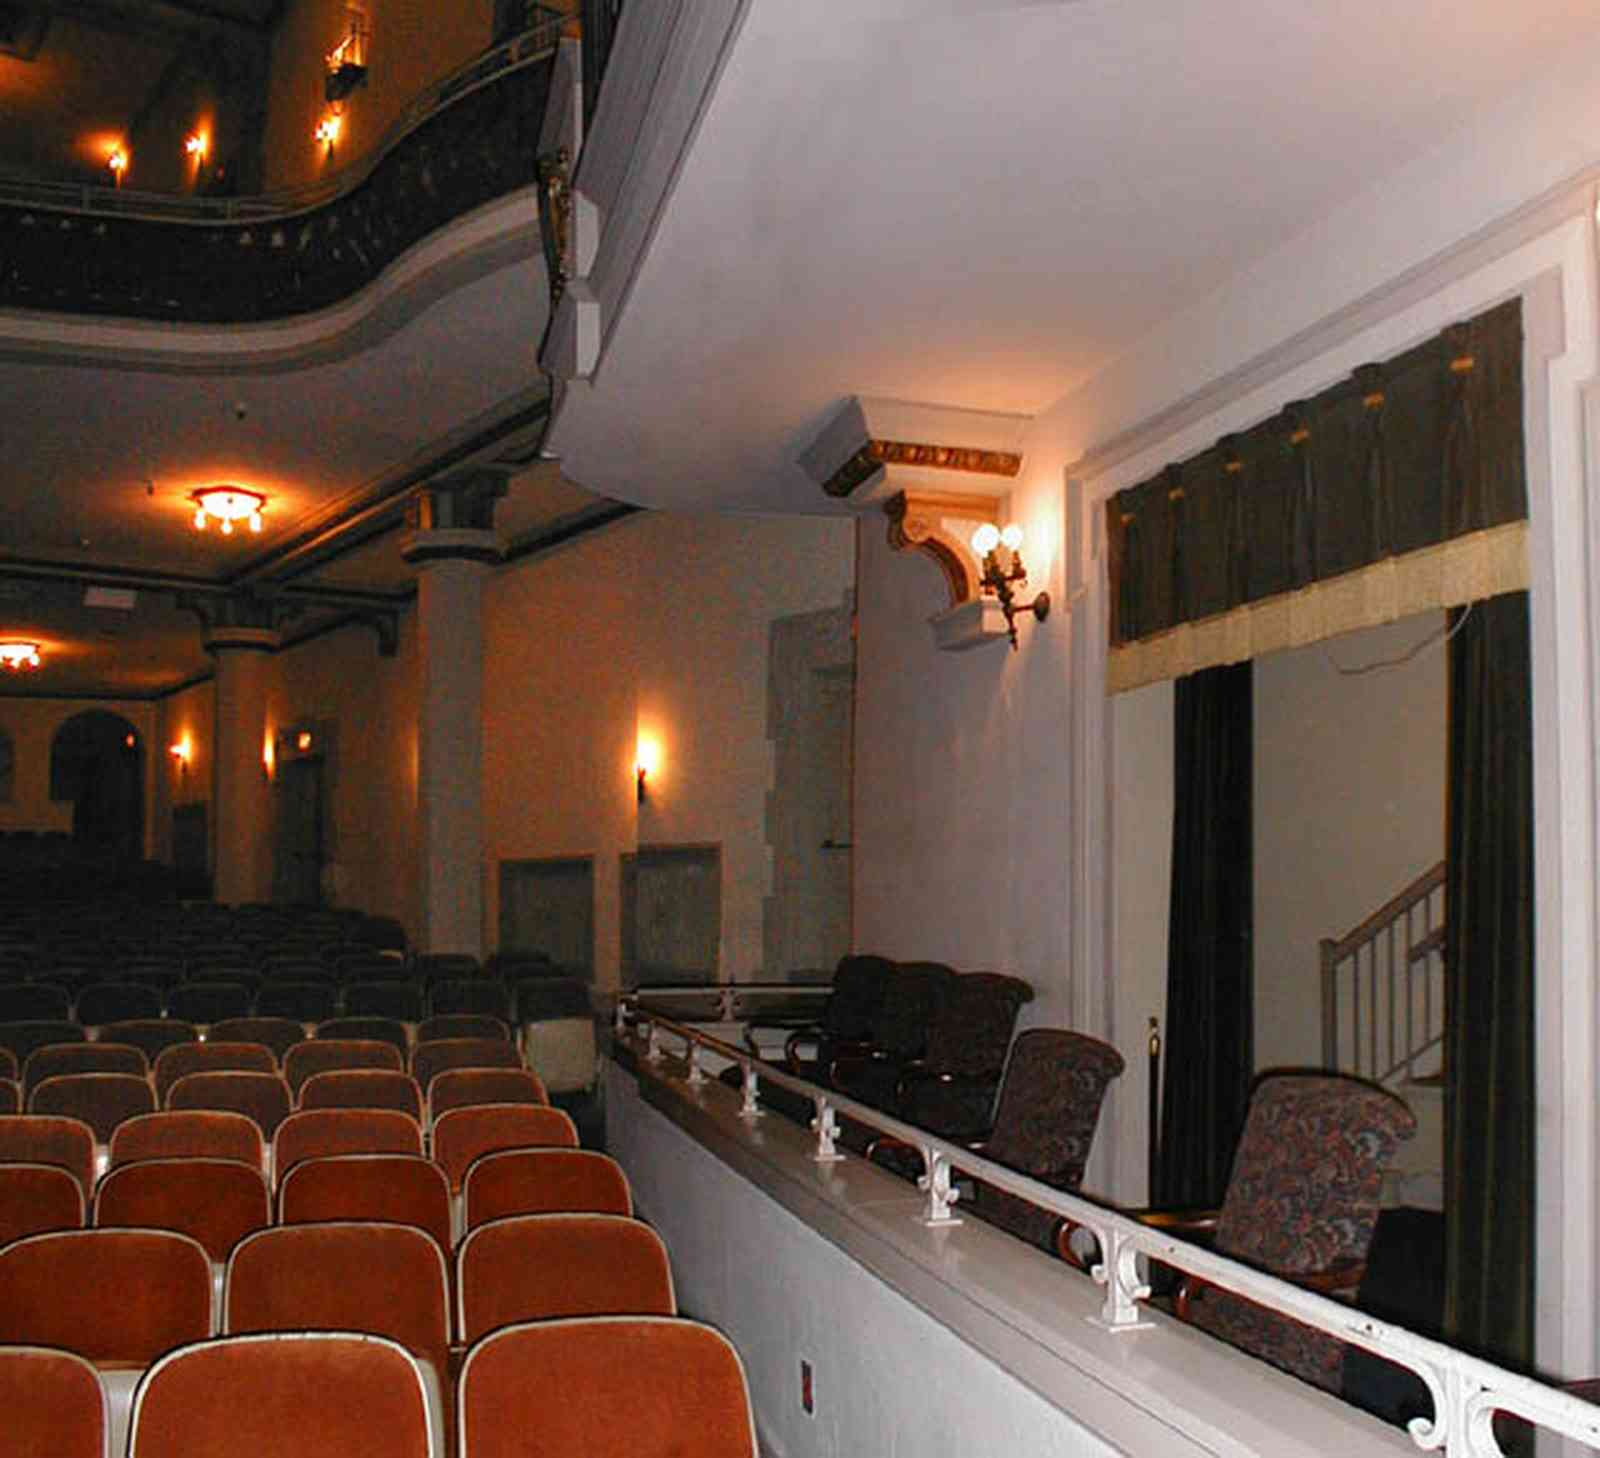 Pensacola:-Palafox-Historic-District:-Saenger-Theatre_05b.jpg:  theatre, balcony, box seating, velvet seats, stage, fringed curtains, stairs, opera house, philharmonic symphony orchestra, baroque architecture